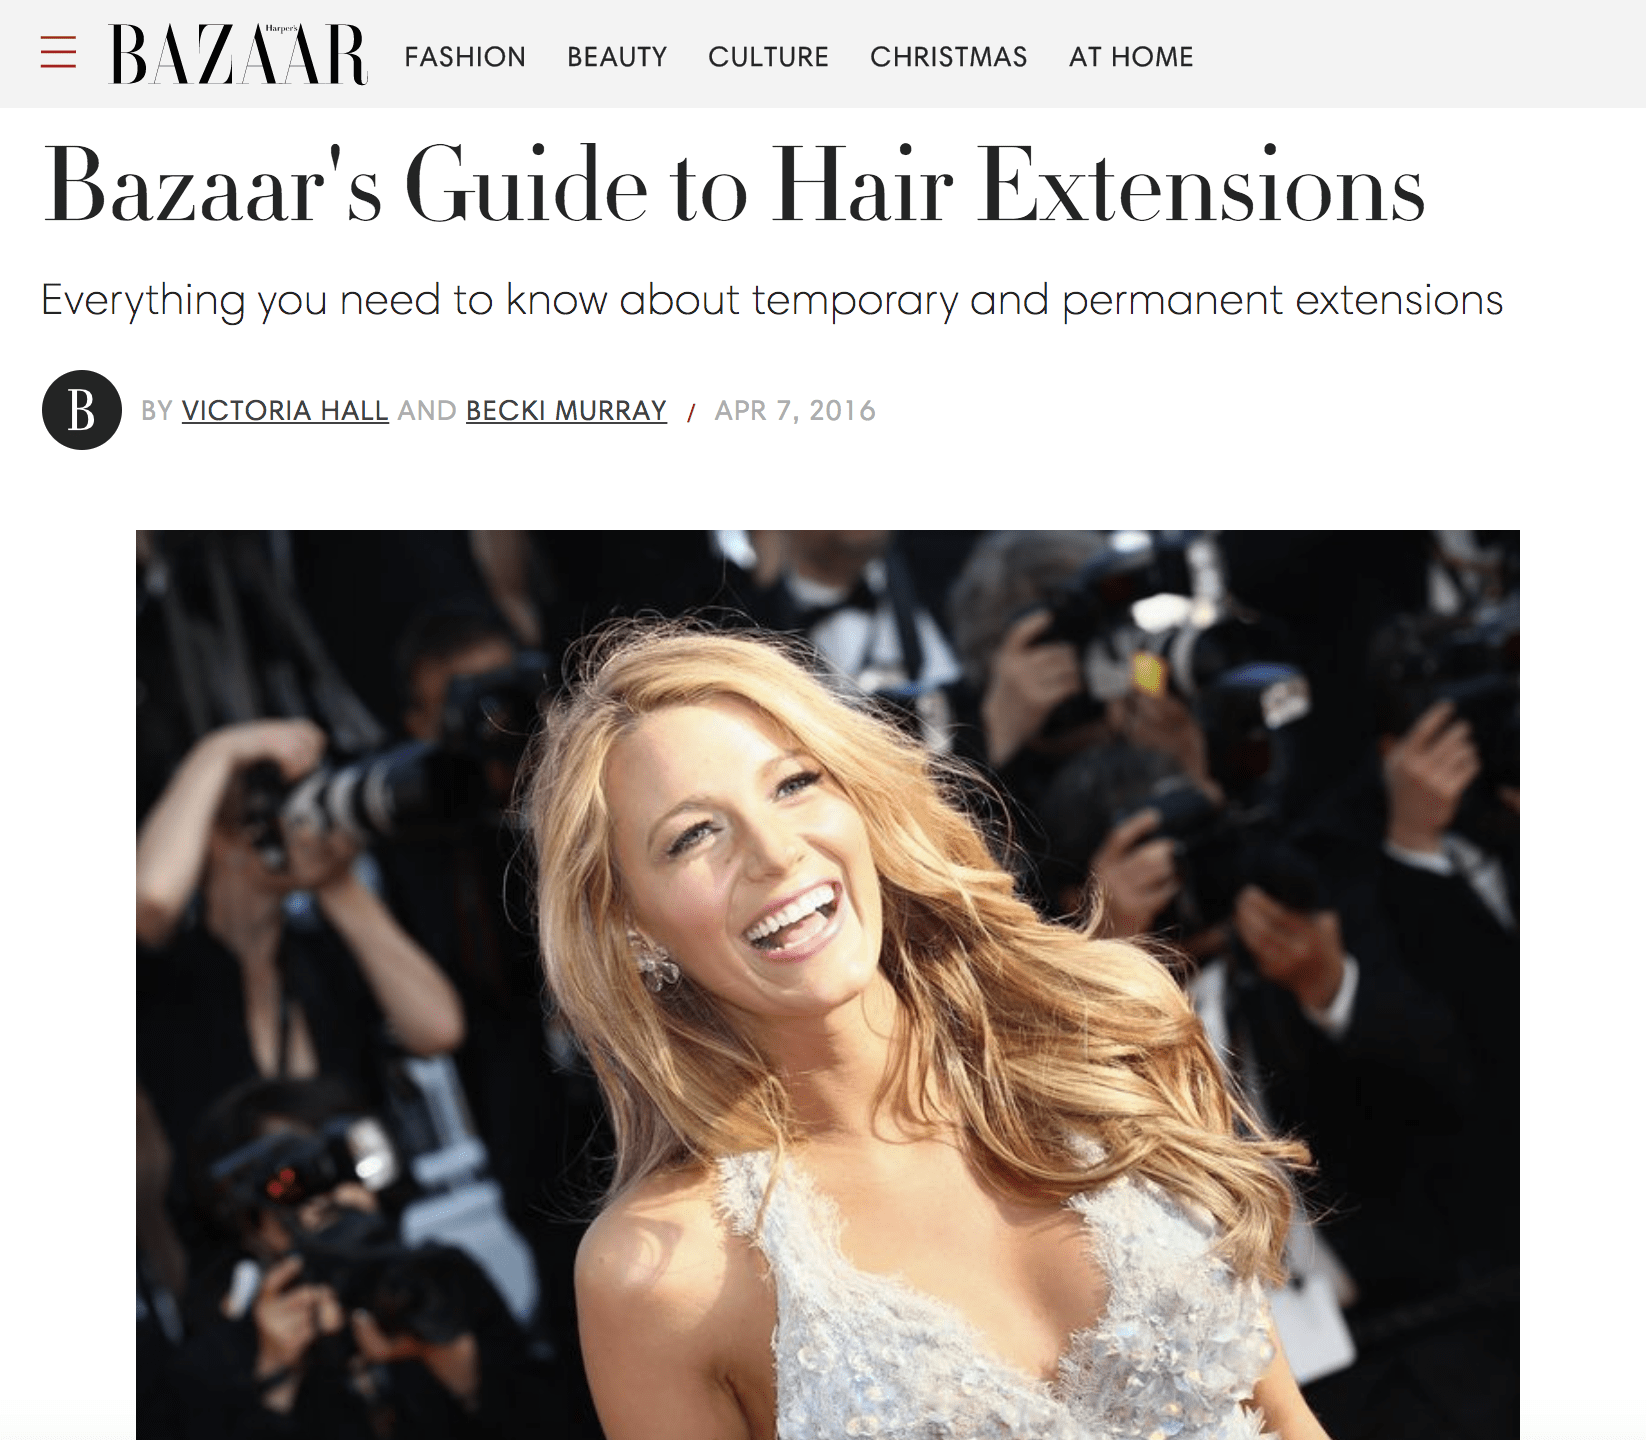 harpers-bazaar-louise-bailey-hair-extensions-london-press-coverage